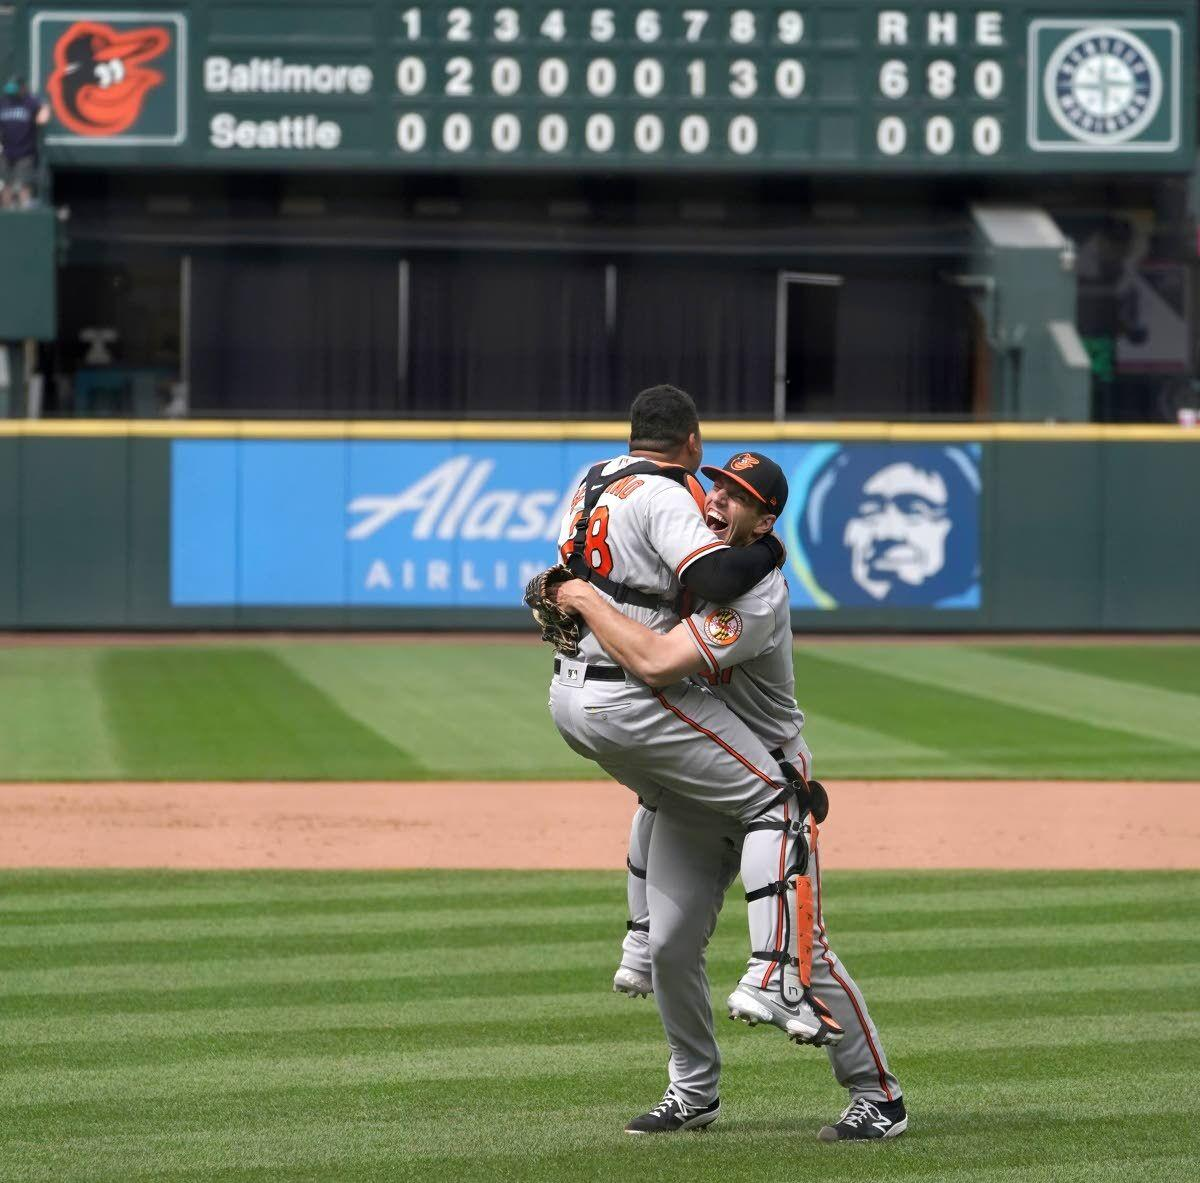 Orioles' Means throws no-hitter against M's